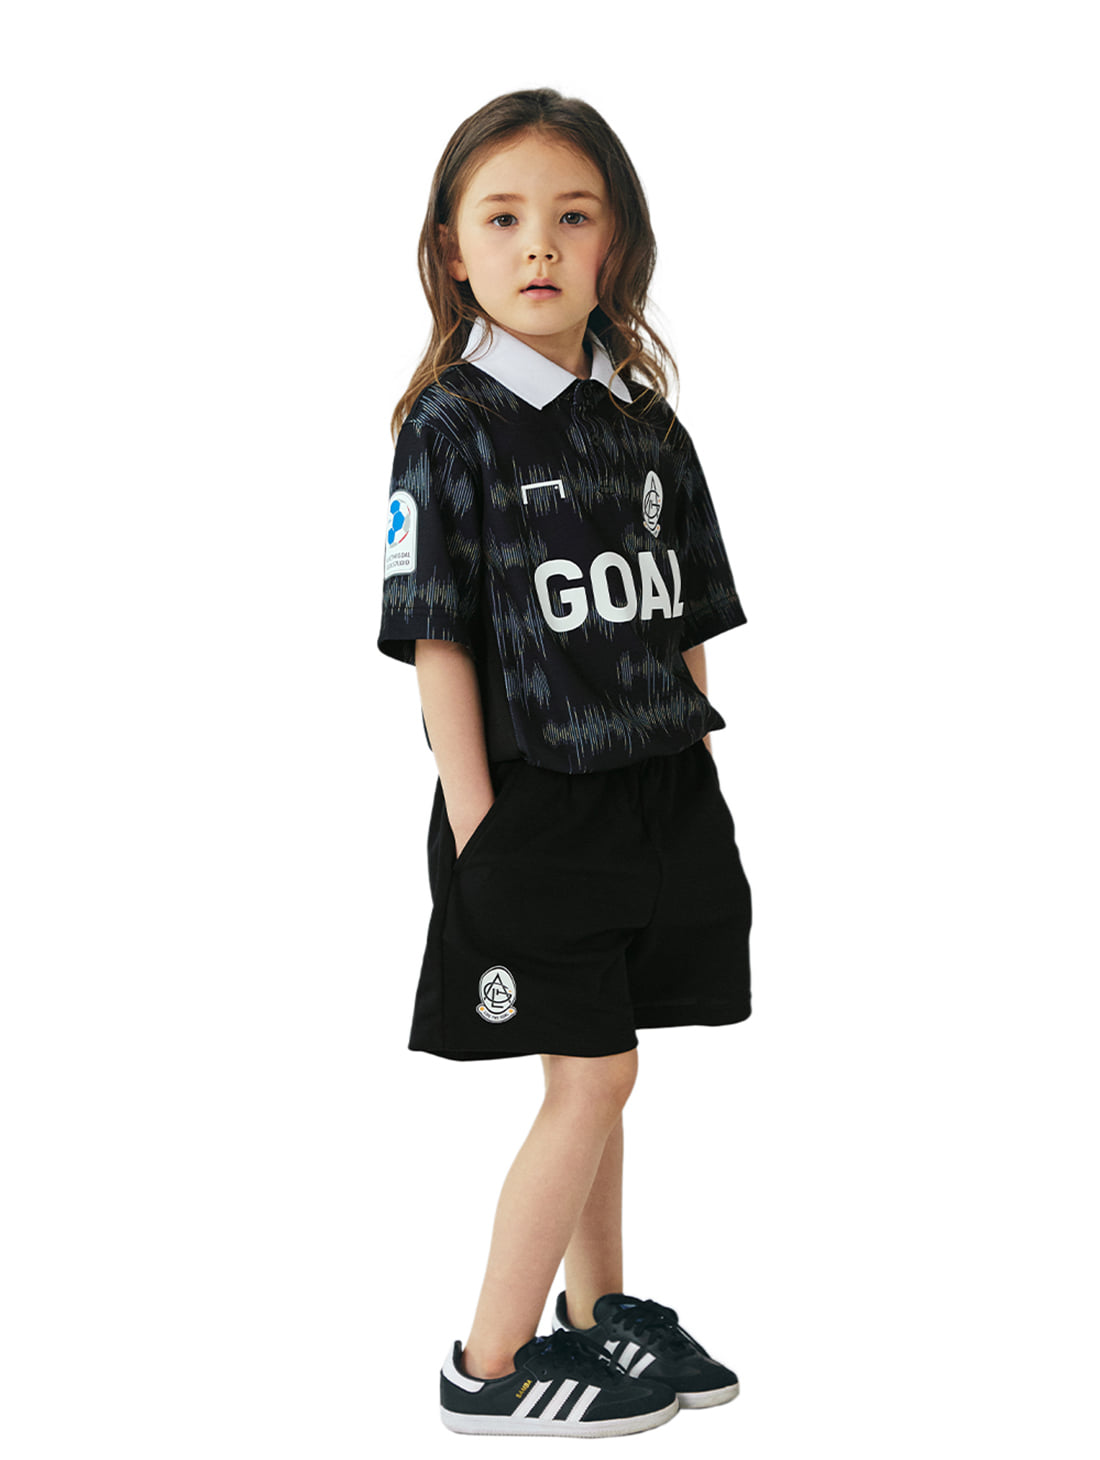 GOALSTUDIO [10% OFF] (KIDS) PULSE GAME & SHORTS SET